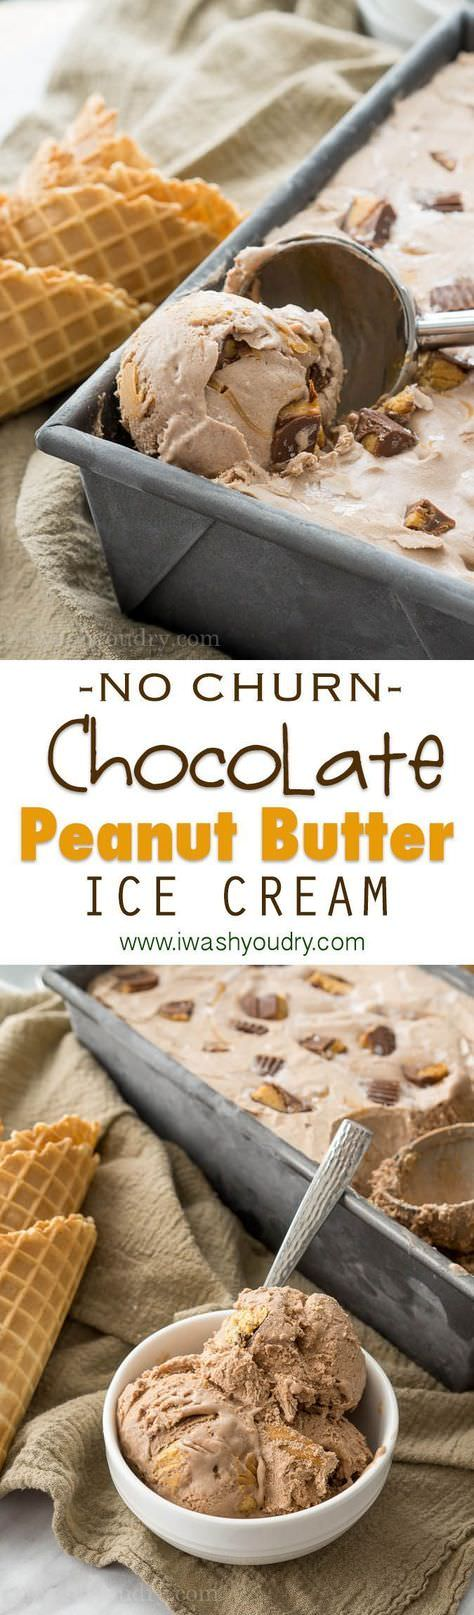 This No Churn Chocolate Peanut Butter Ice Cream is by far the easiest and creamiest and peanut-iest ice cream out there!